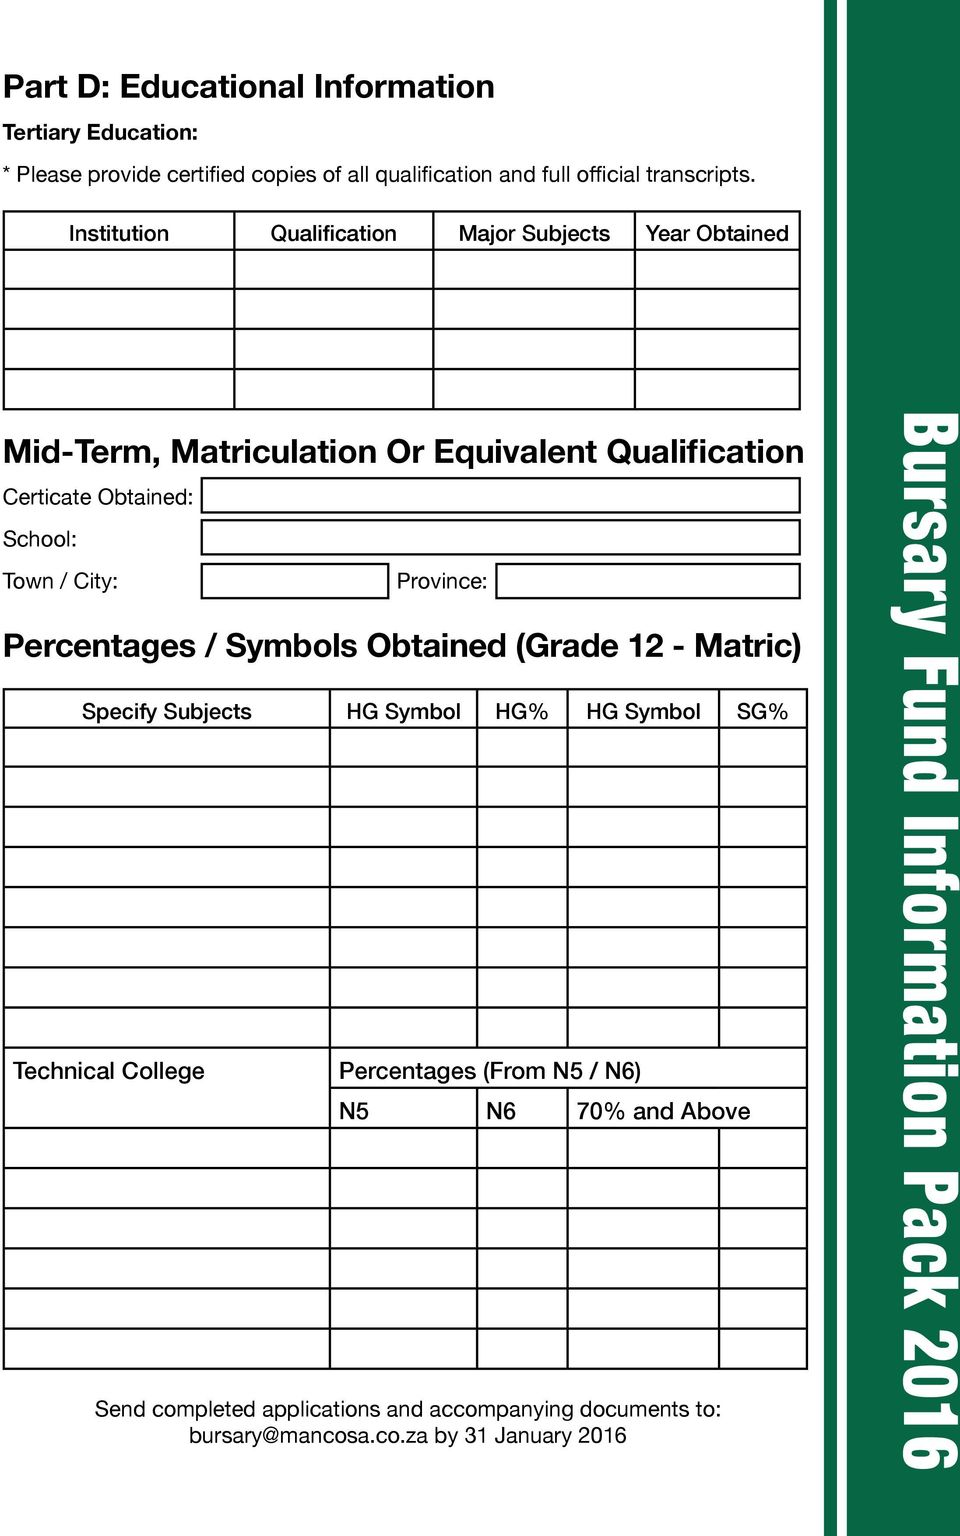 Institution Qualification Major Subjects Year Obtained Mid-Term, Matriculation Or Equivalent Qualification